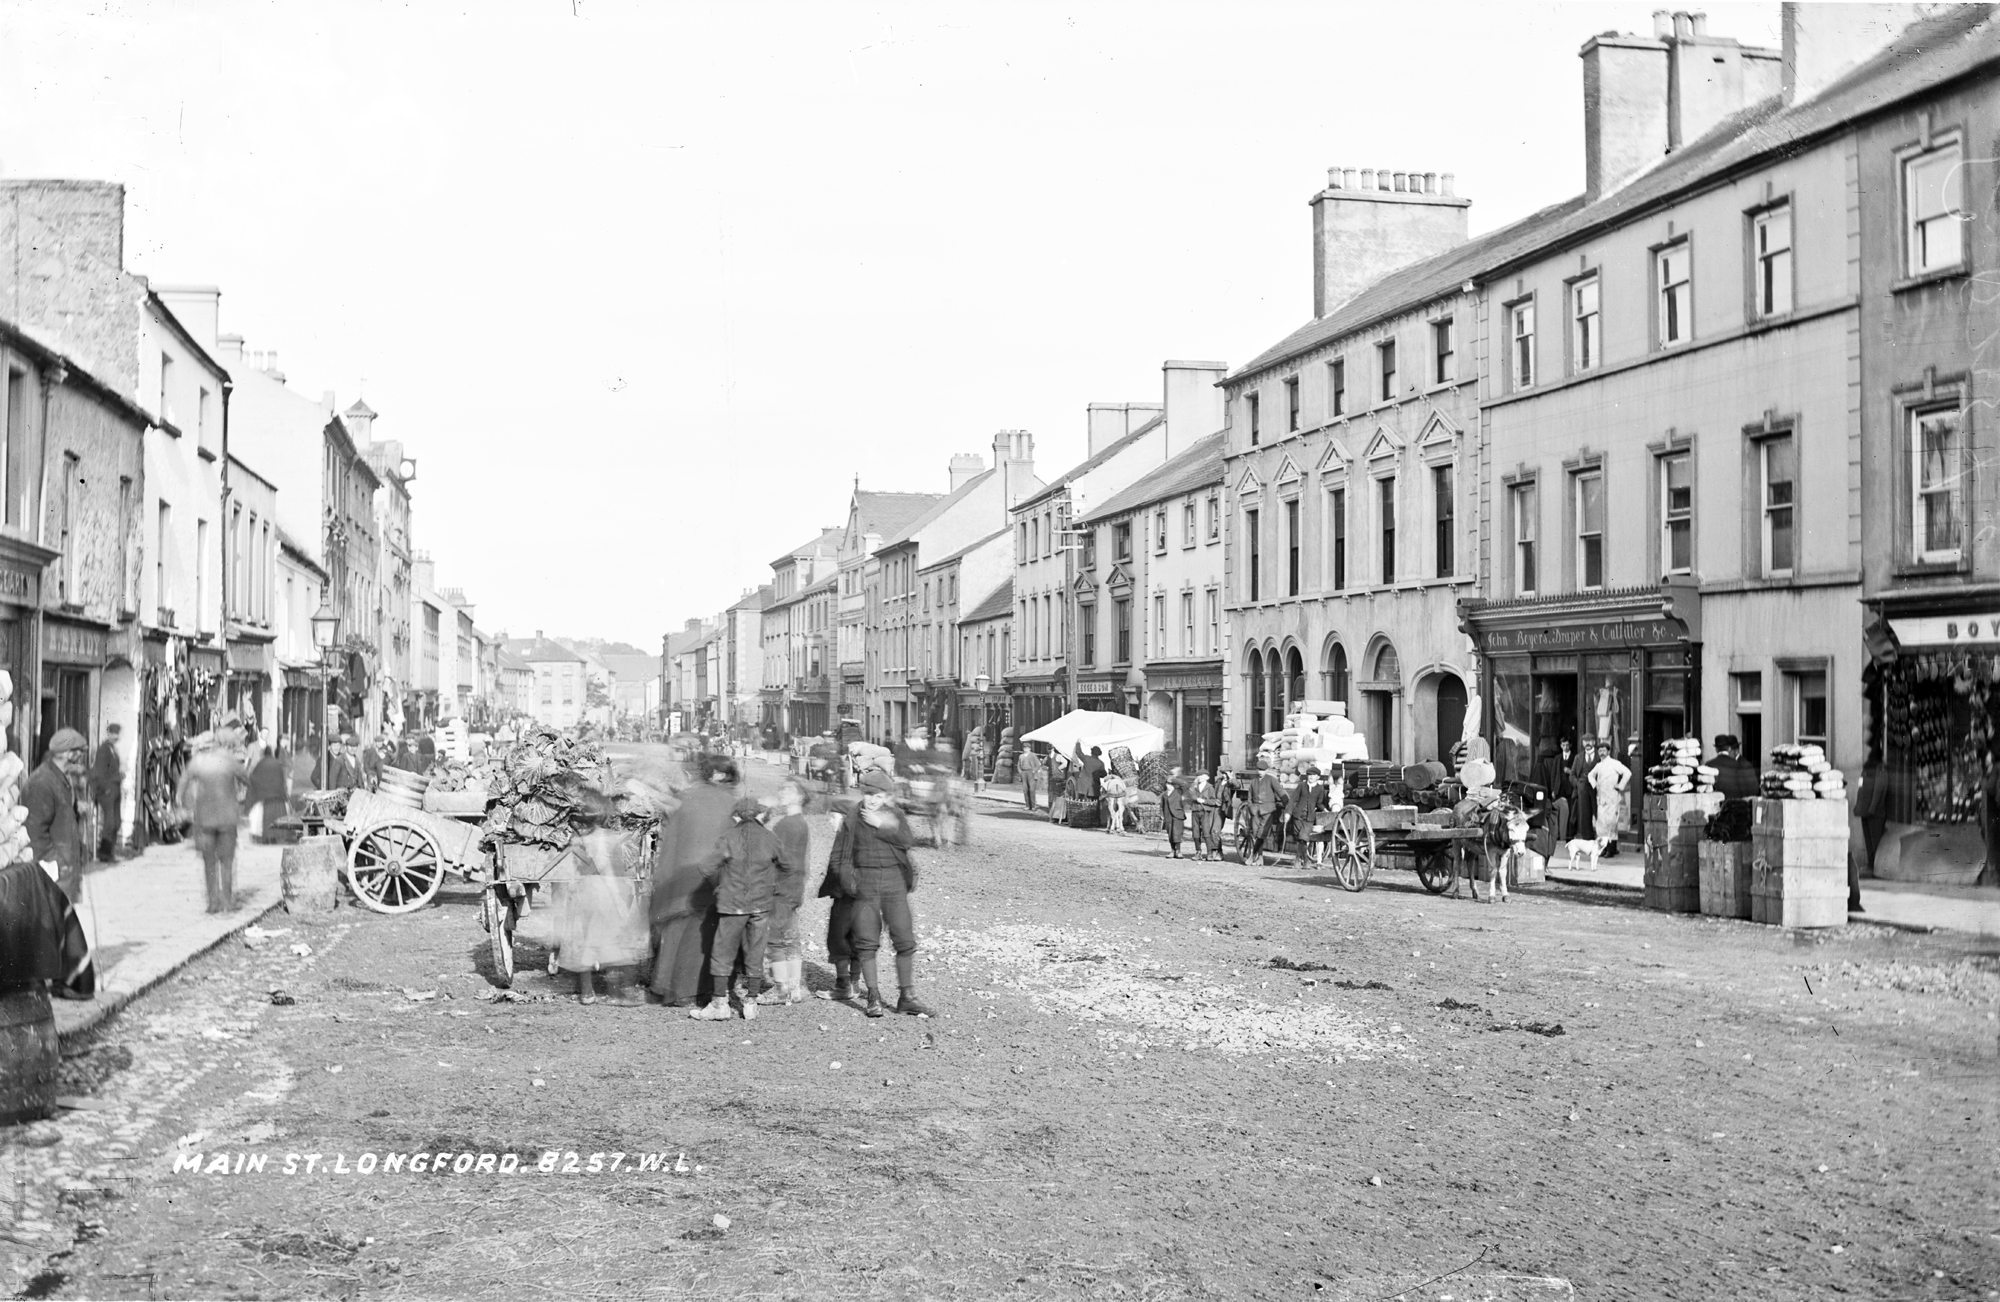 Main Street, Longford on a market day